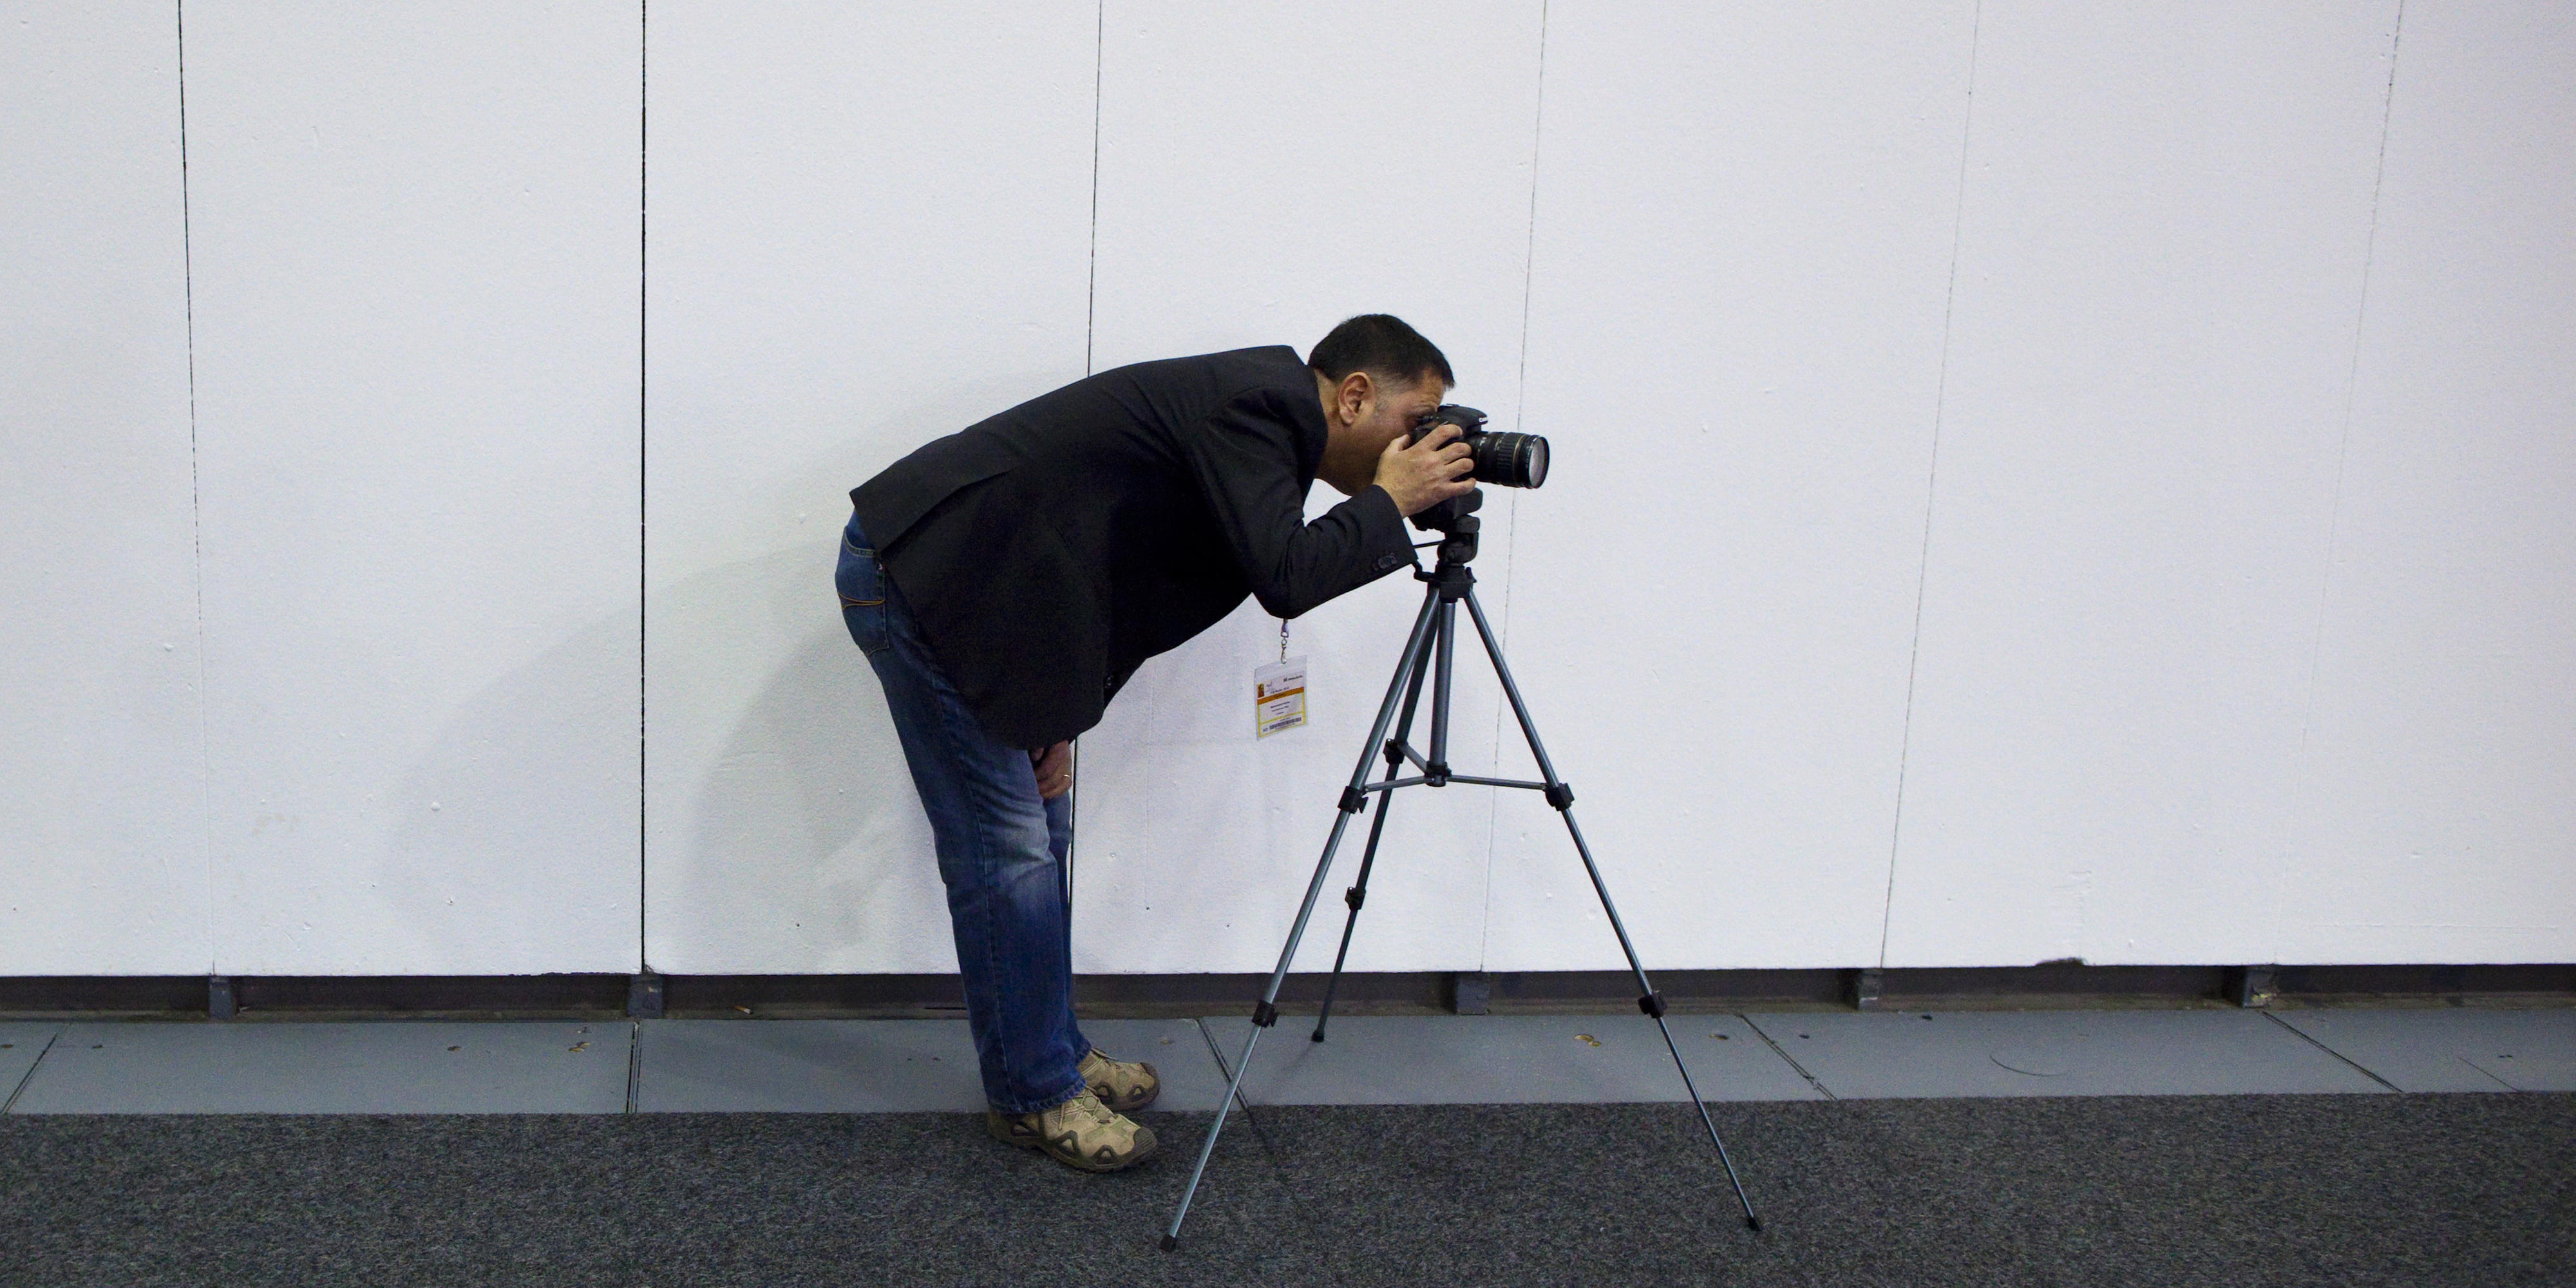 Photographer with camera and tripod